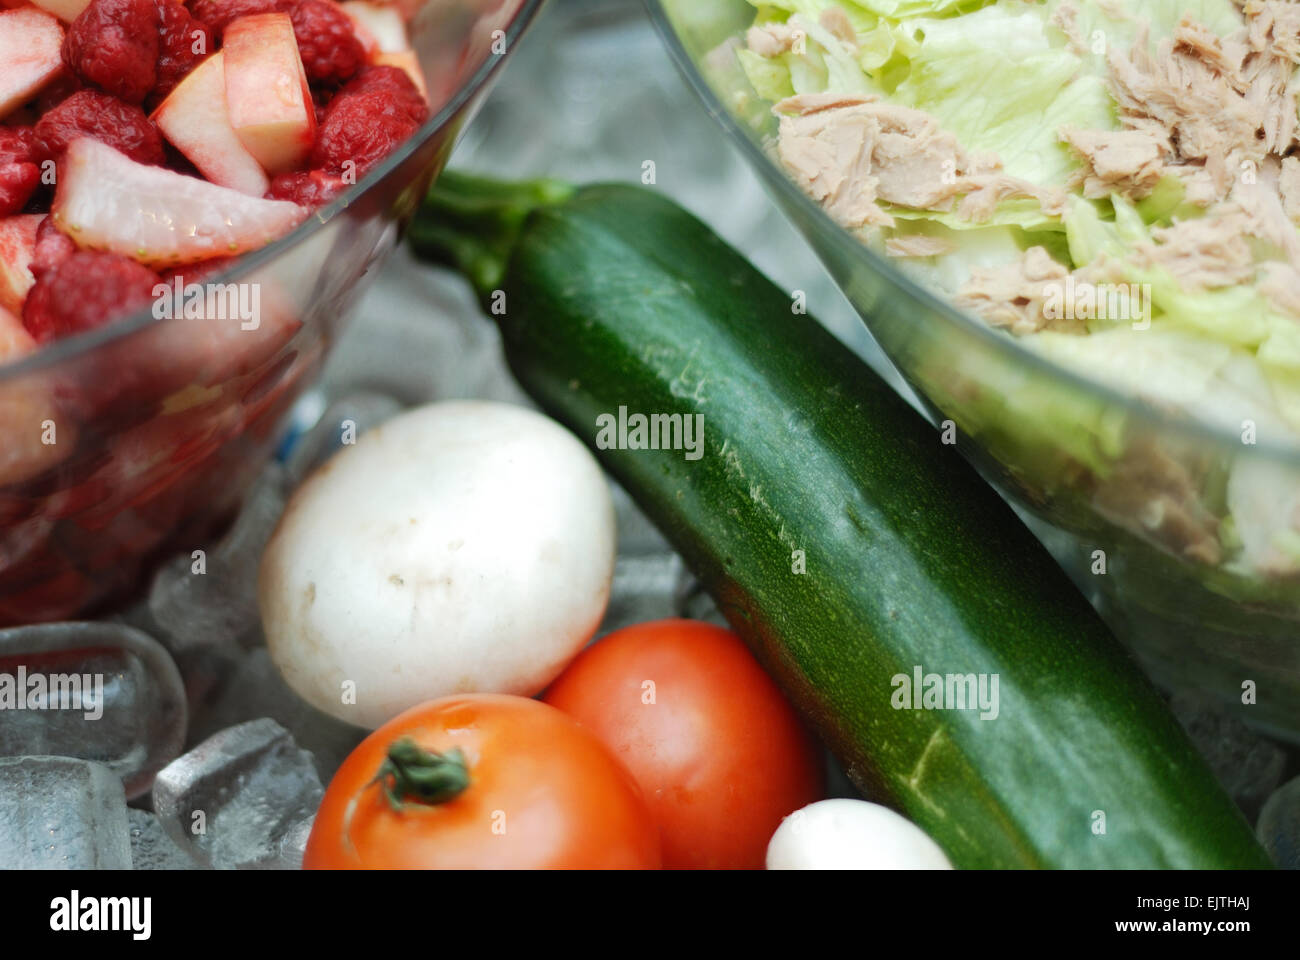 salads and ingredients on ice - Stock Image